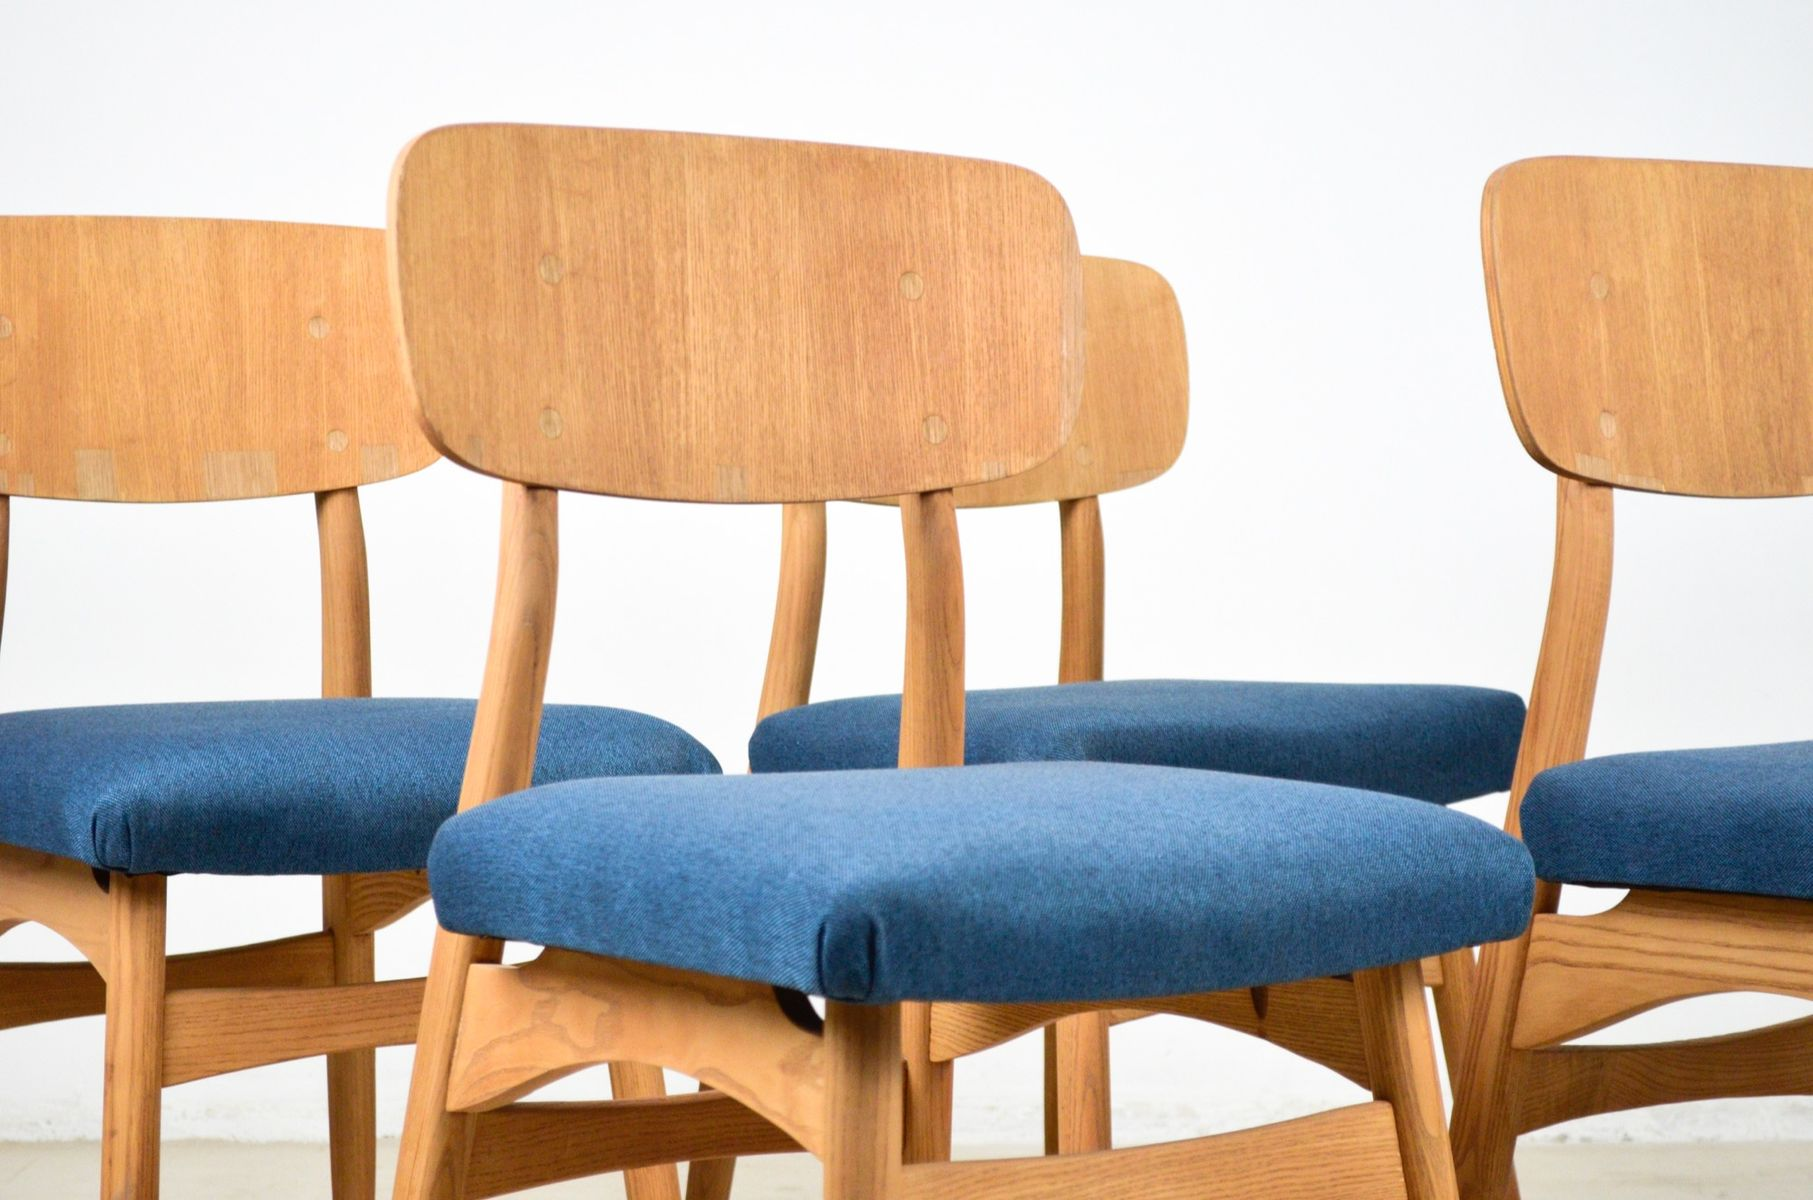 Ash Dining Chair with Deep Blue Upholstery 1960s for sale at Pamono